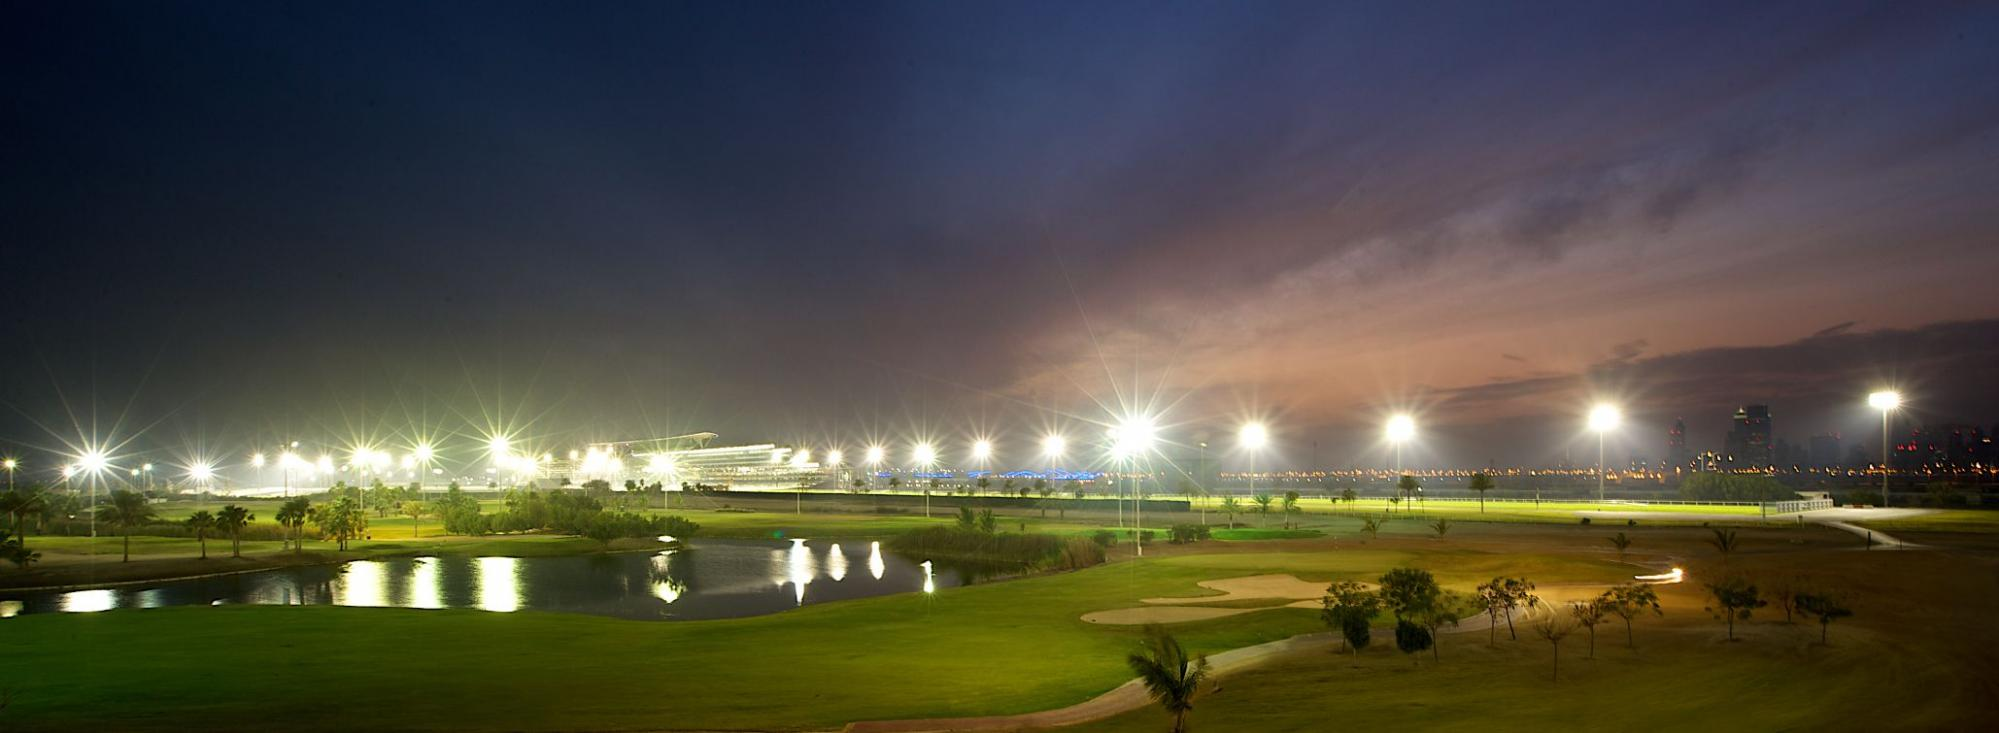 The The Track, Meydan Golf's lovely golf course within dramatic Dubai.